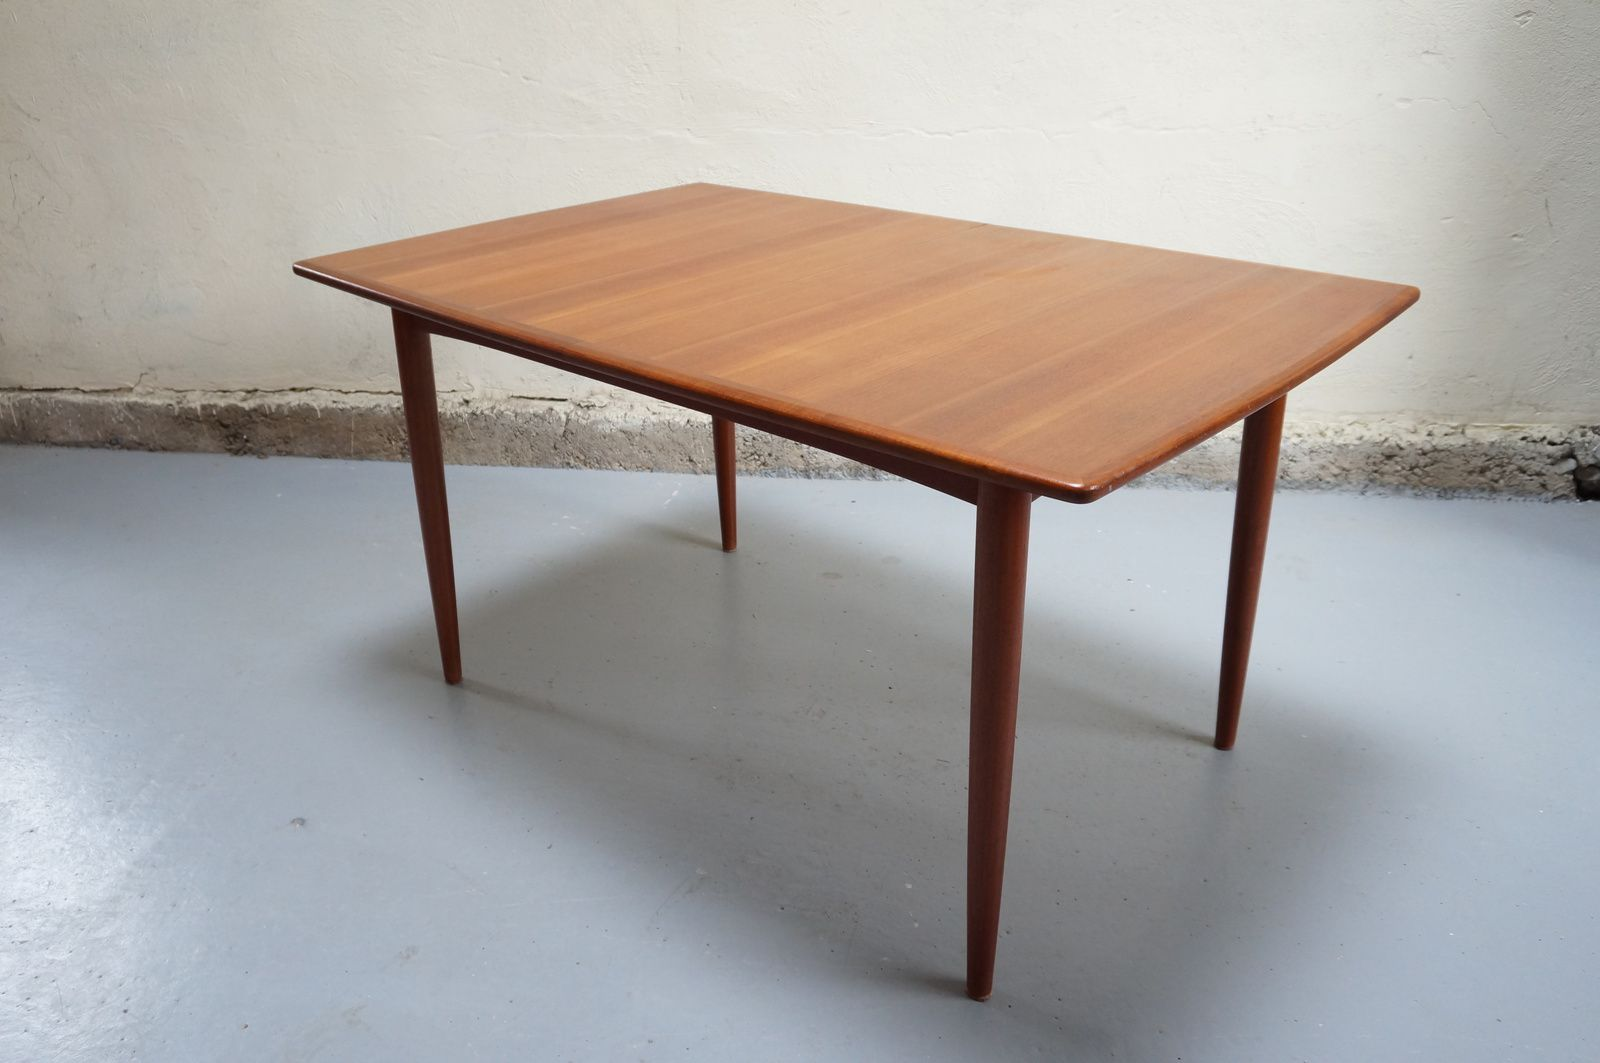 Vendue table manger scandinave teck design danois for 60s table design